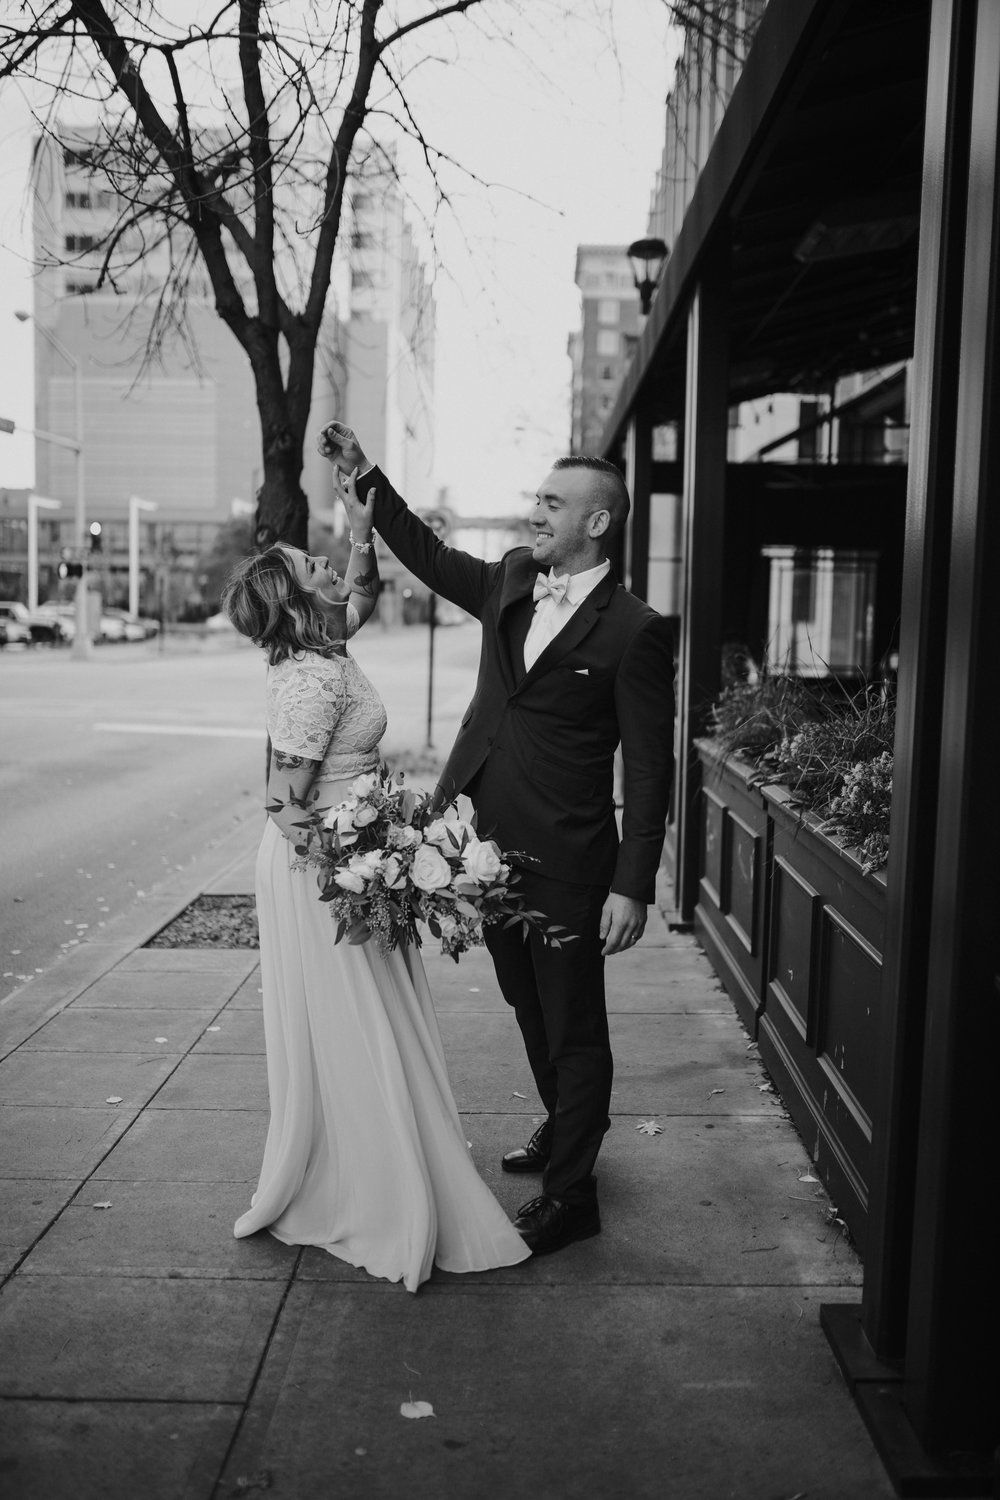 Weddings - MEGHAN & KOREYDes Moines, Iowa Elopement